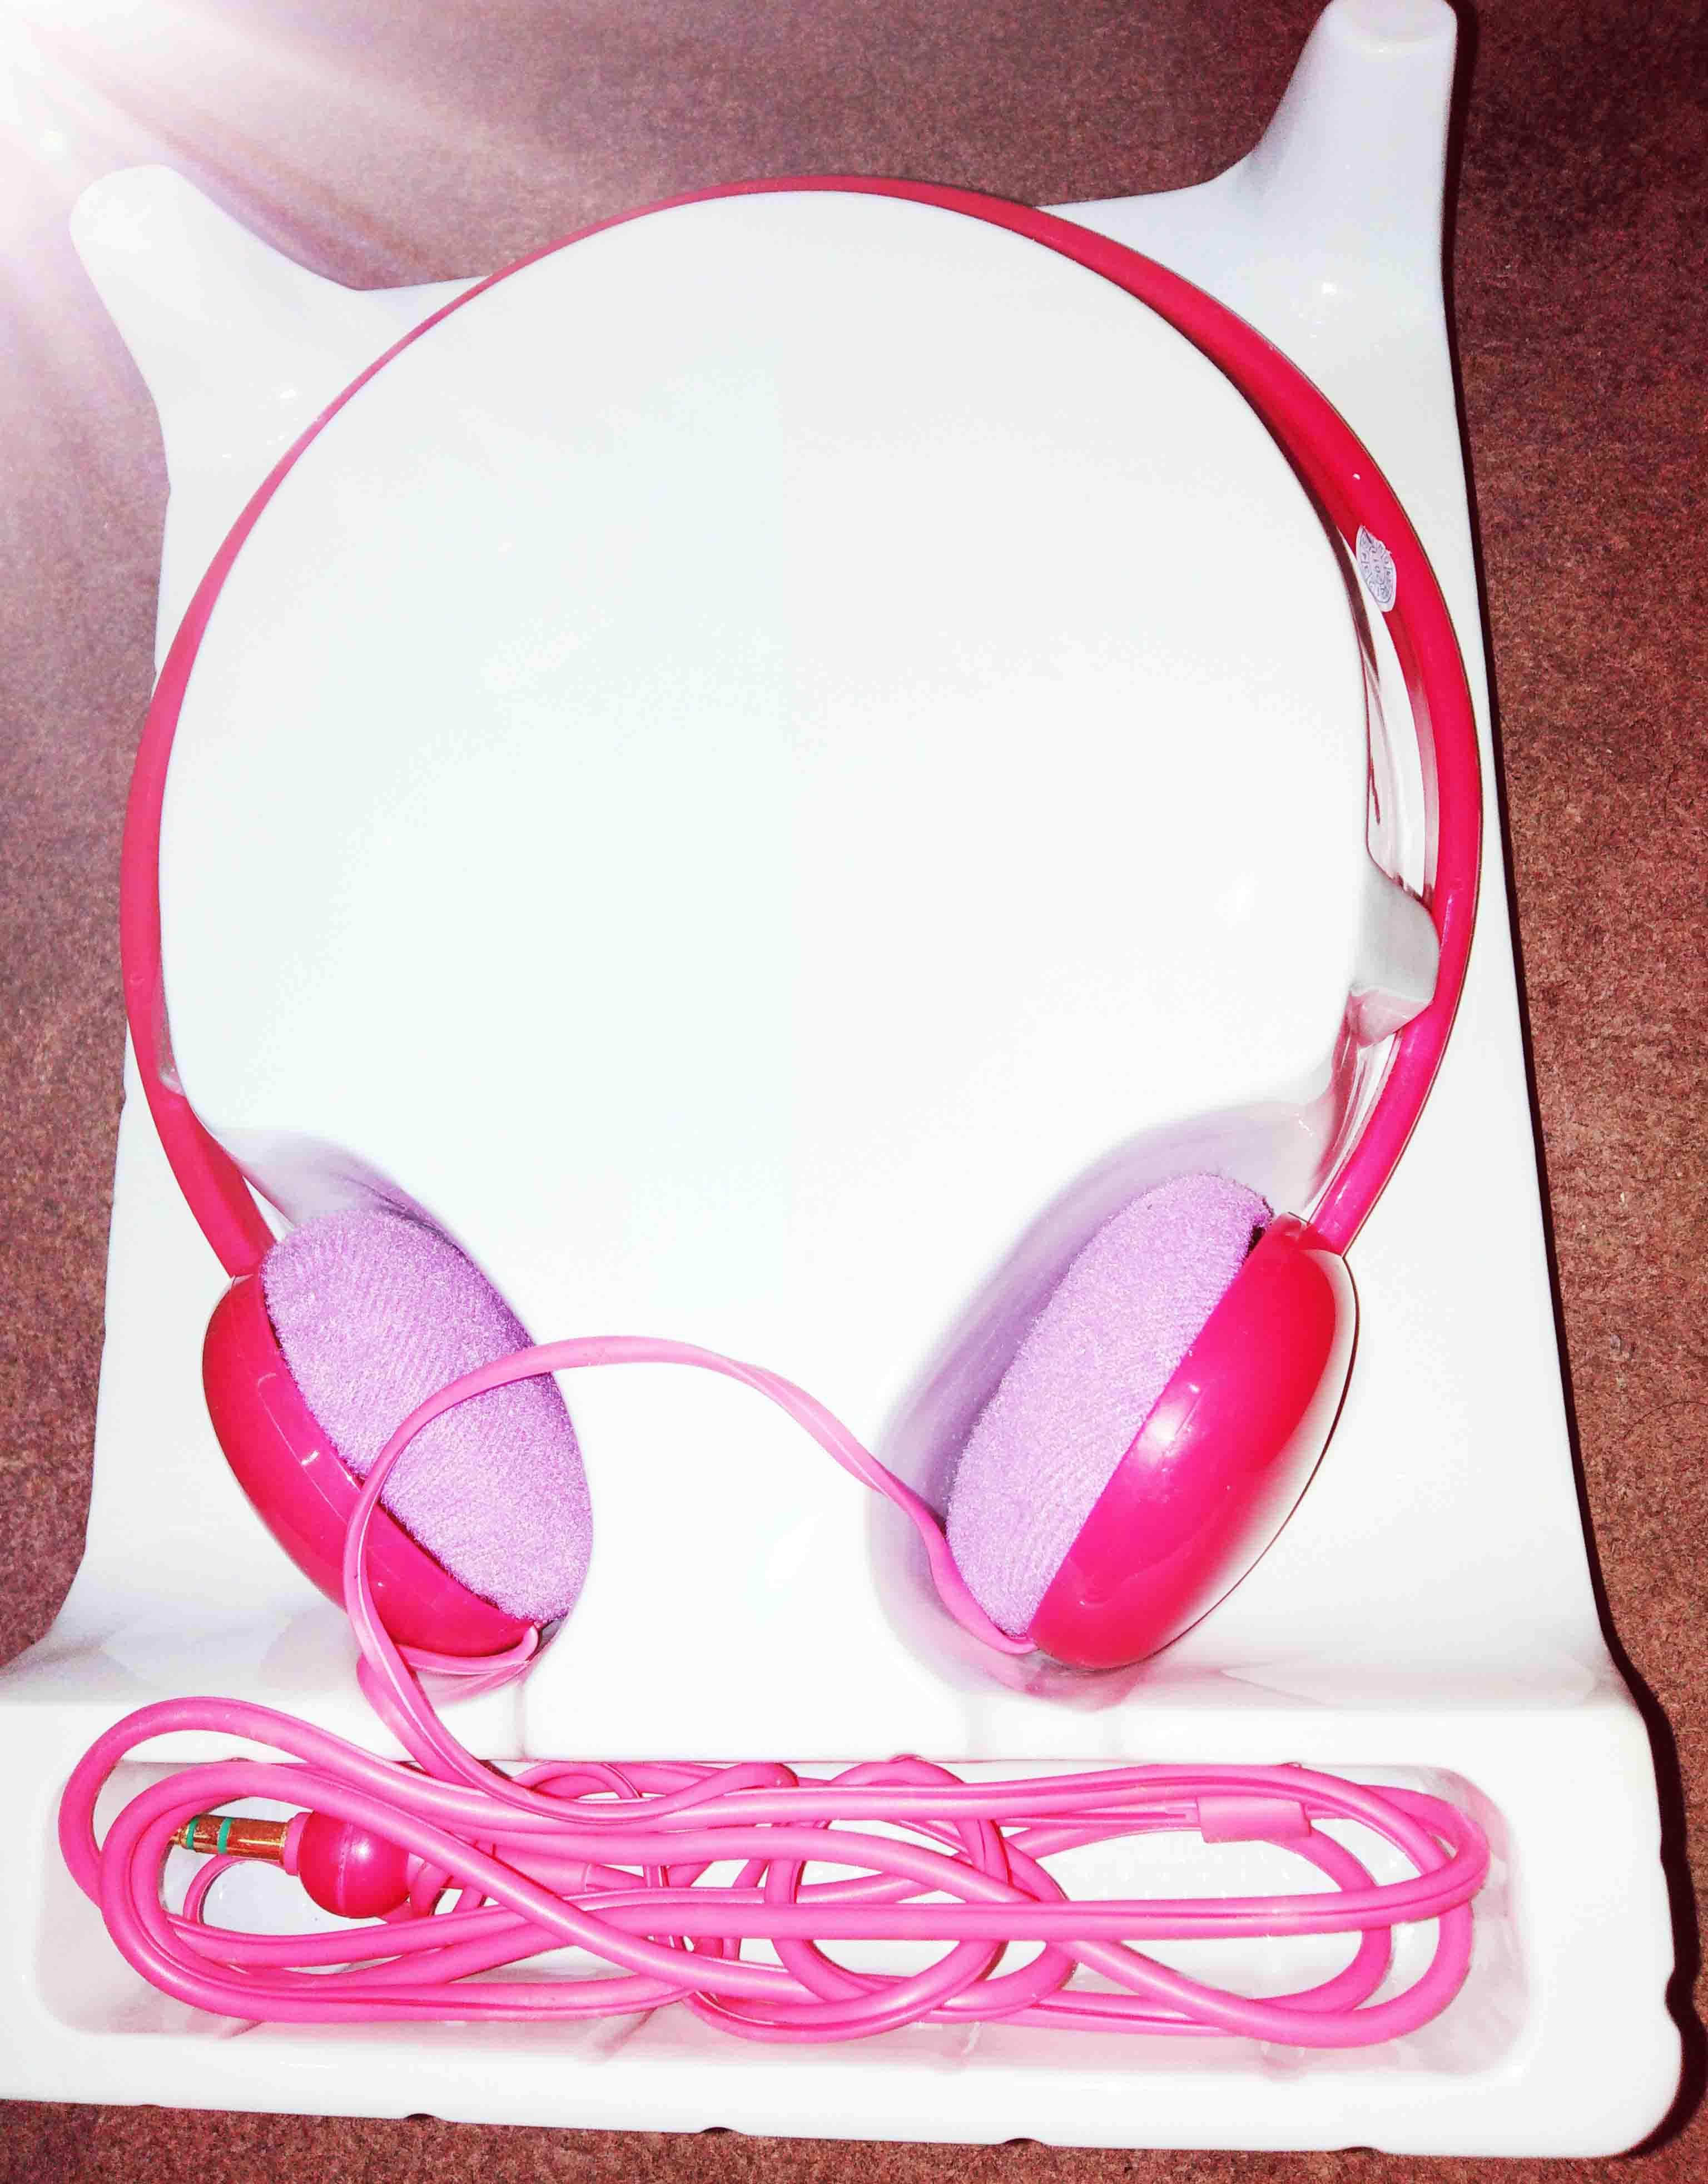 Wired Headphones For Mobiles And Laptops Light Weight